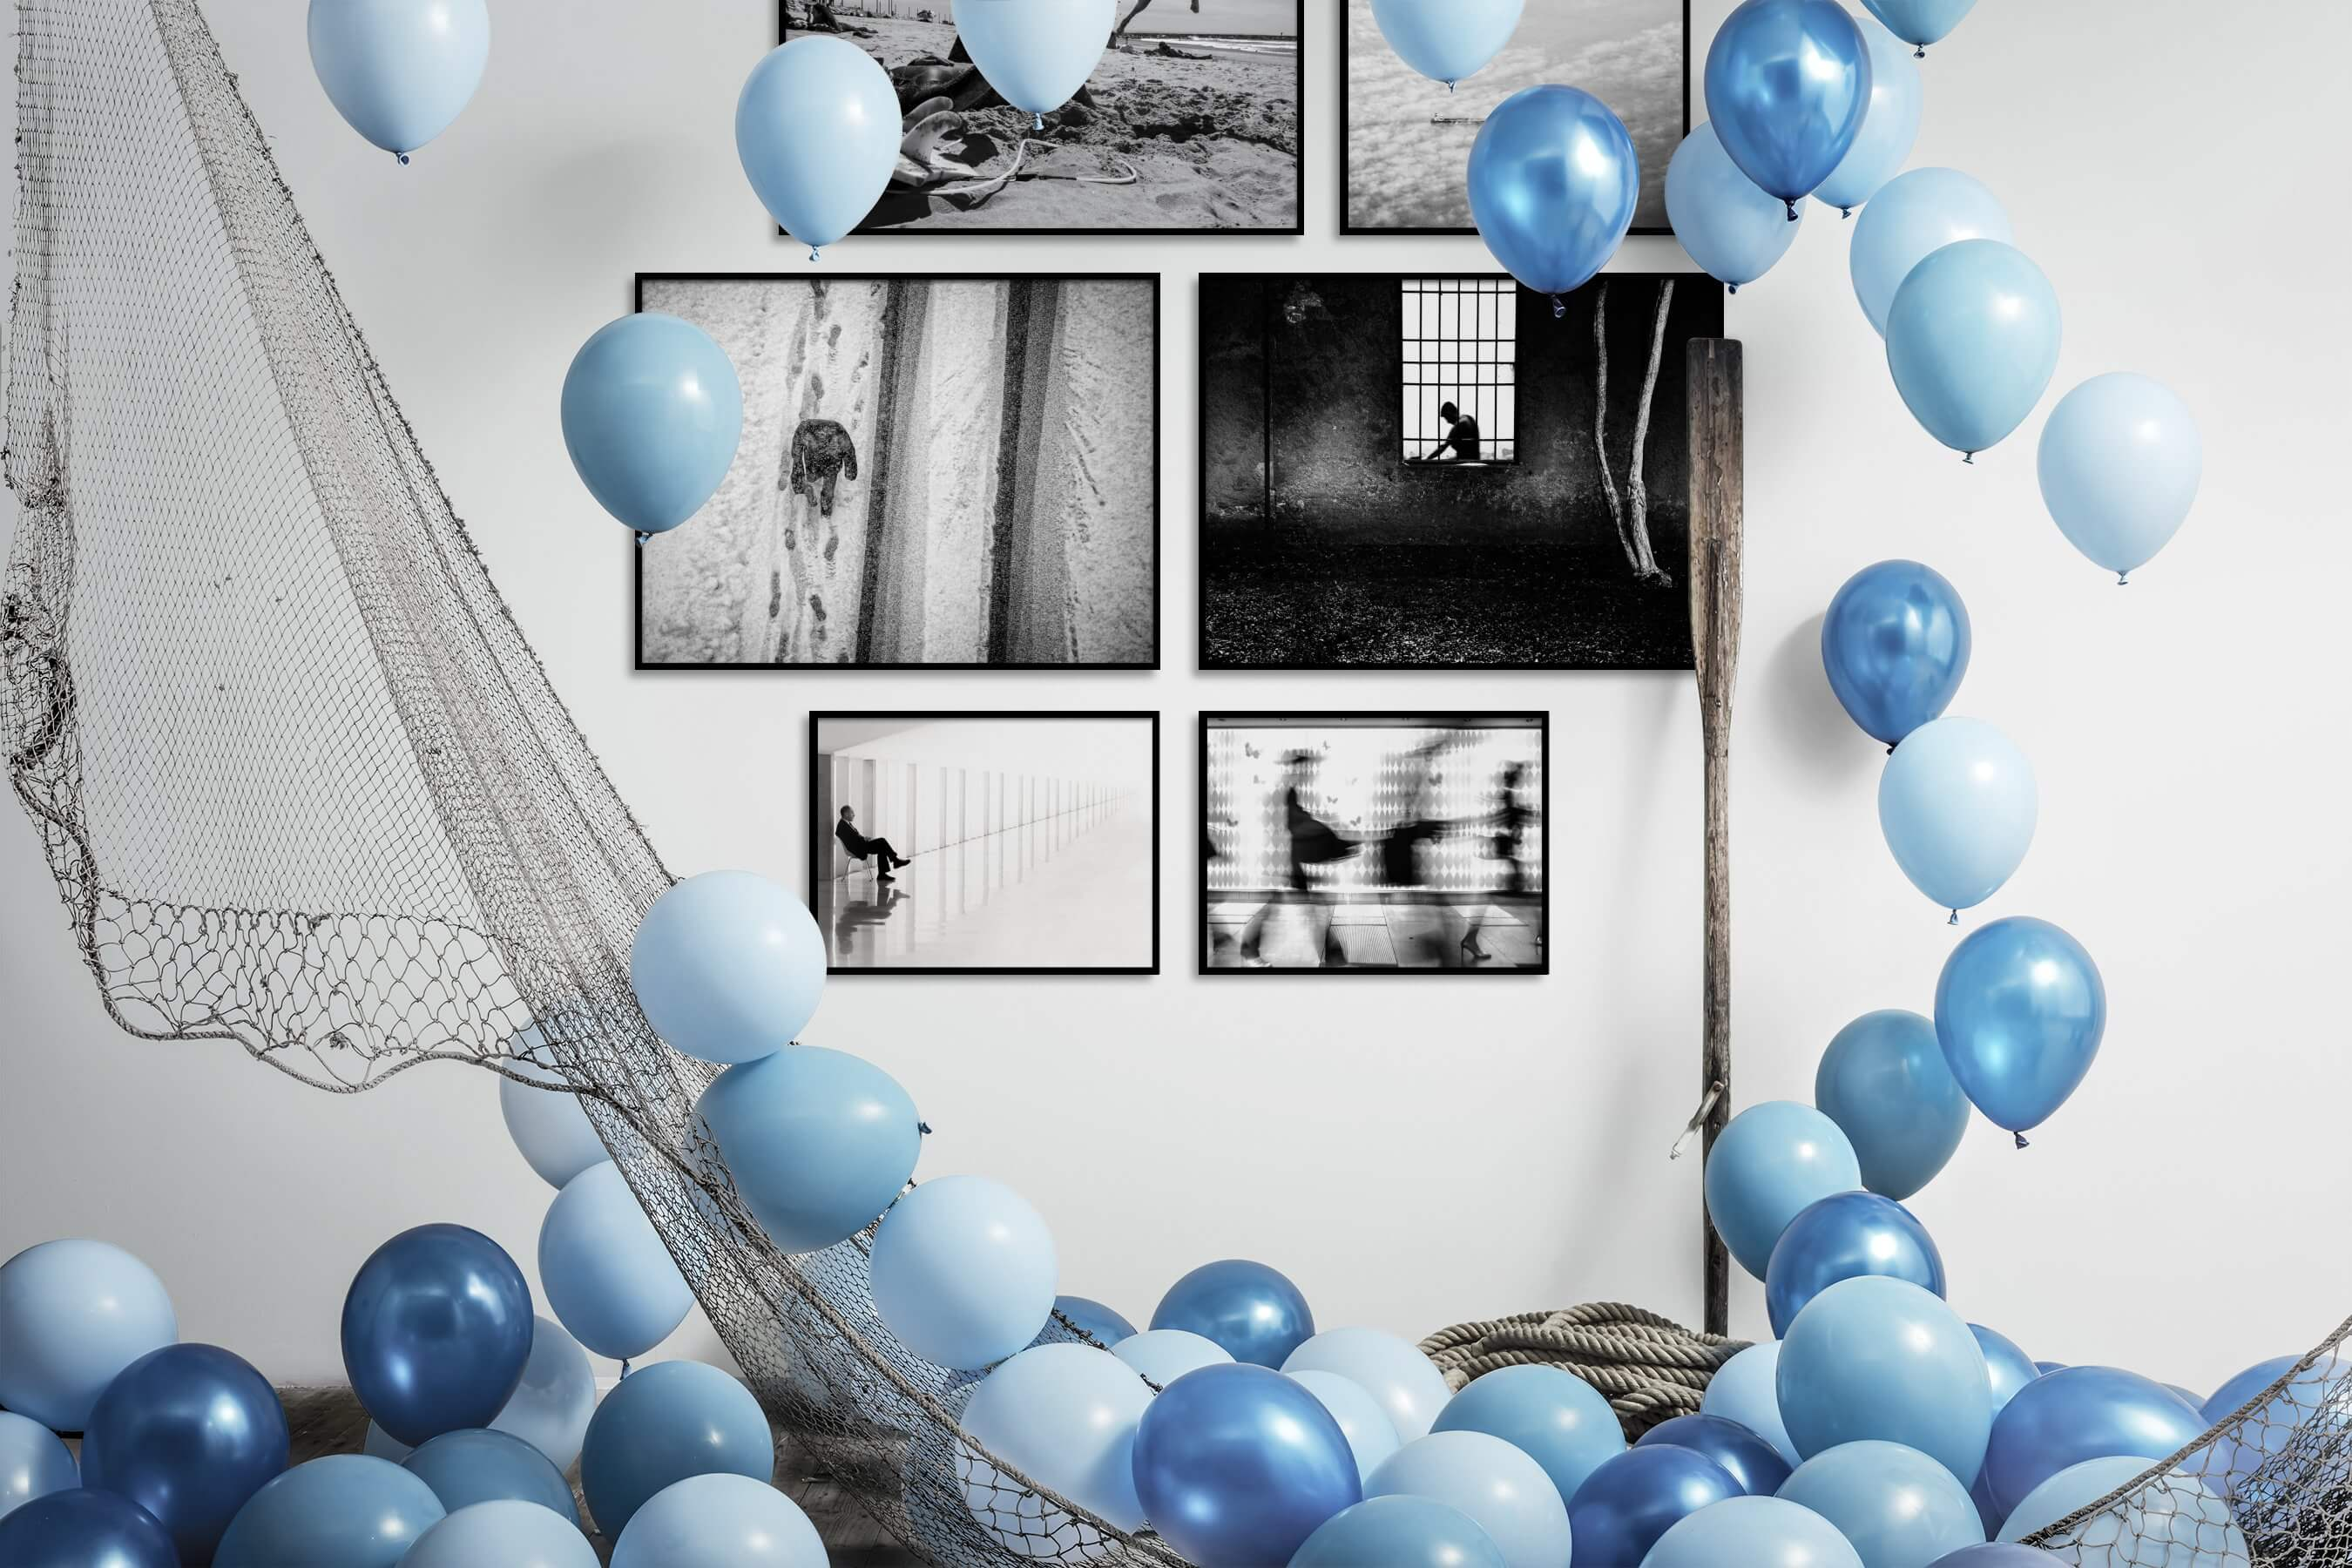 Gallery wall idea with six framed pictures arranged on a wall depicting Black & White, Animals, Beach & Water, For the Moderate, For the Minimalist, and City Life